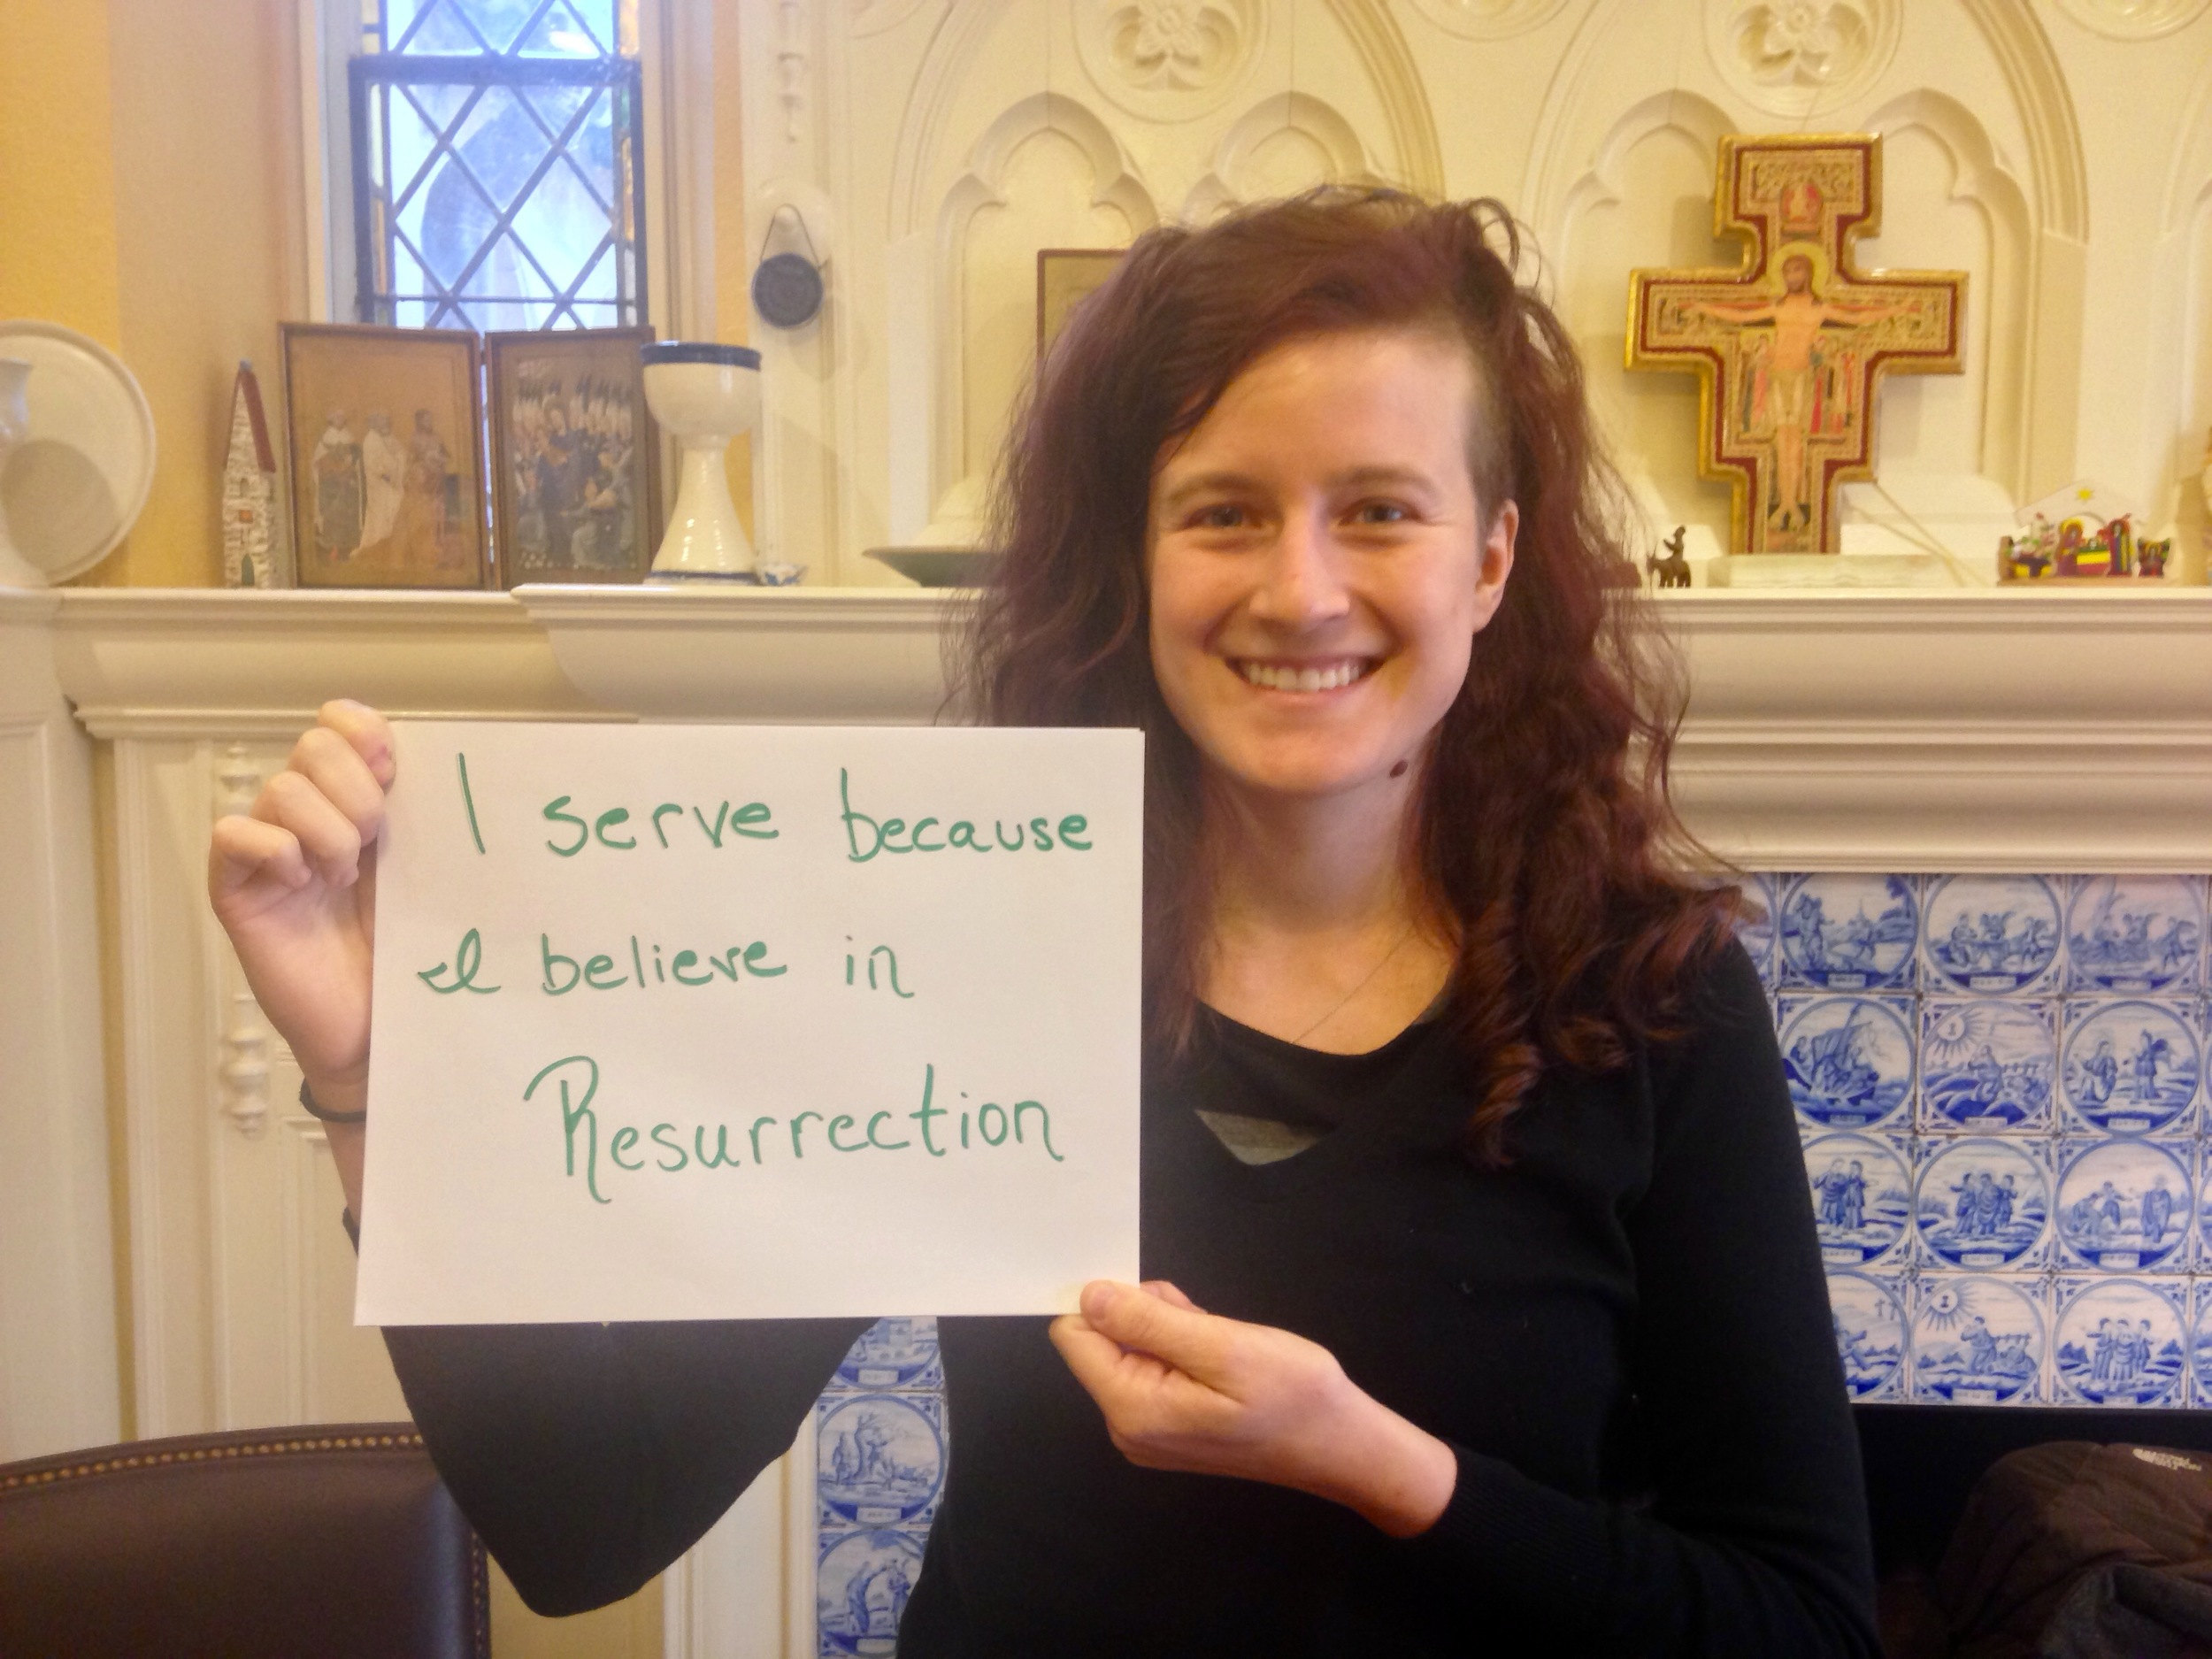 """""""I serve because I believe in Resurrection"""" - Eliza Marth, Micah Fellow at  St Paul's Episcopal Church, Brookline & Brookline intentional community"""